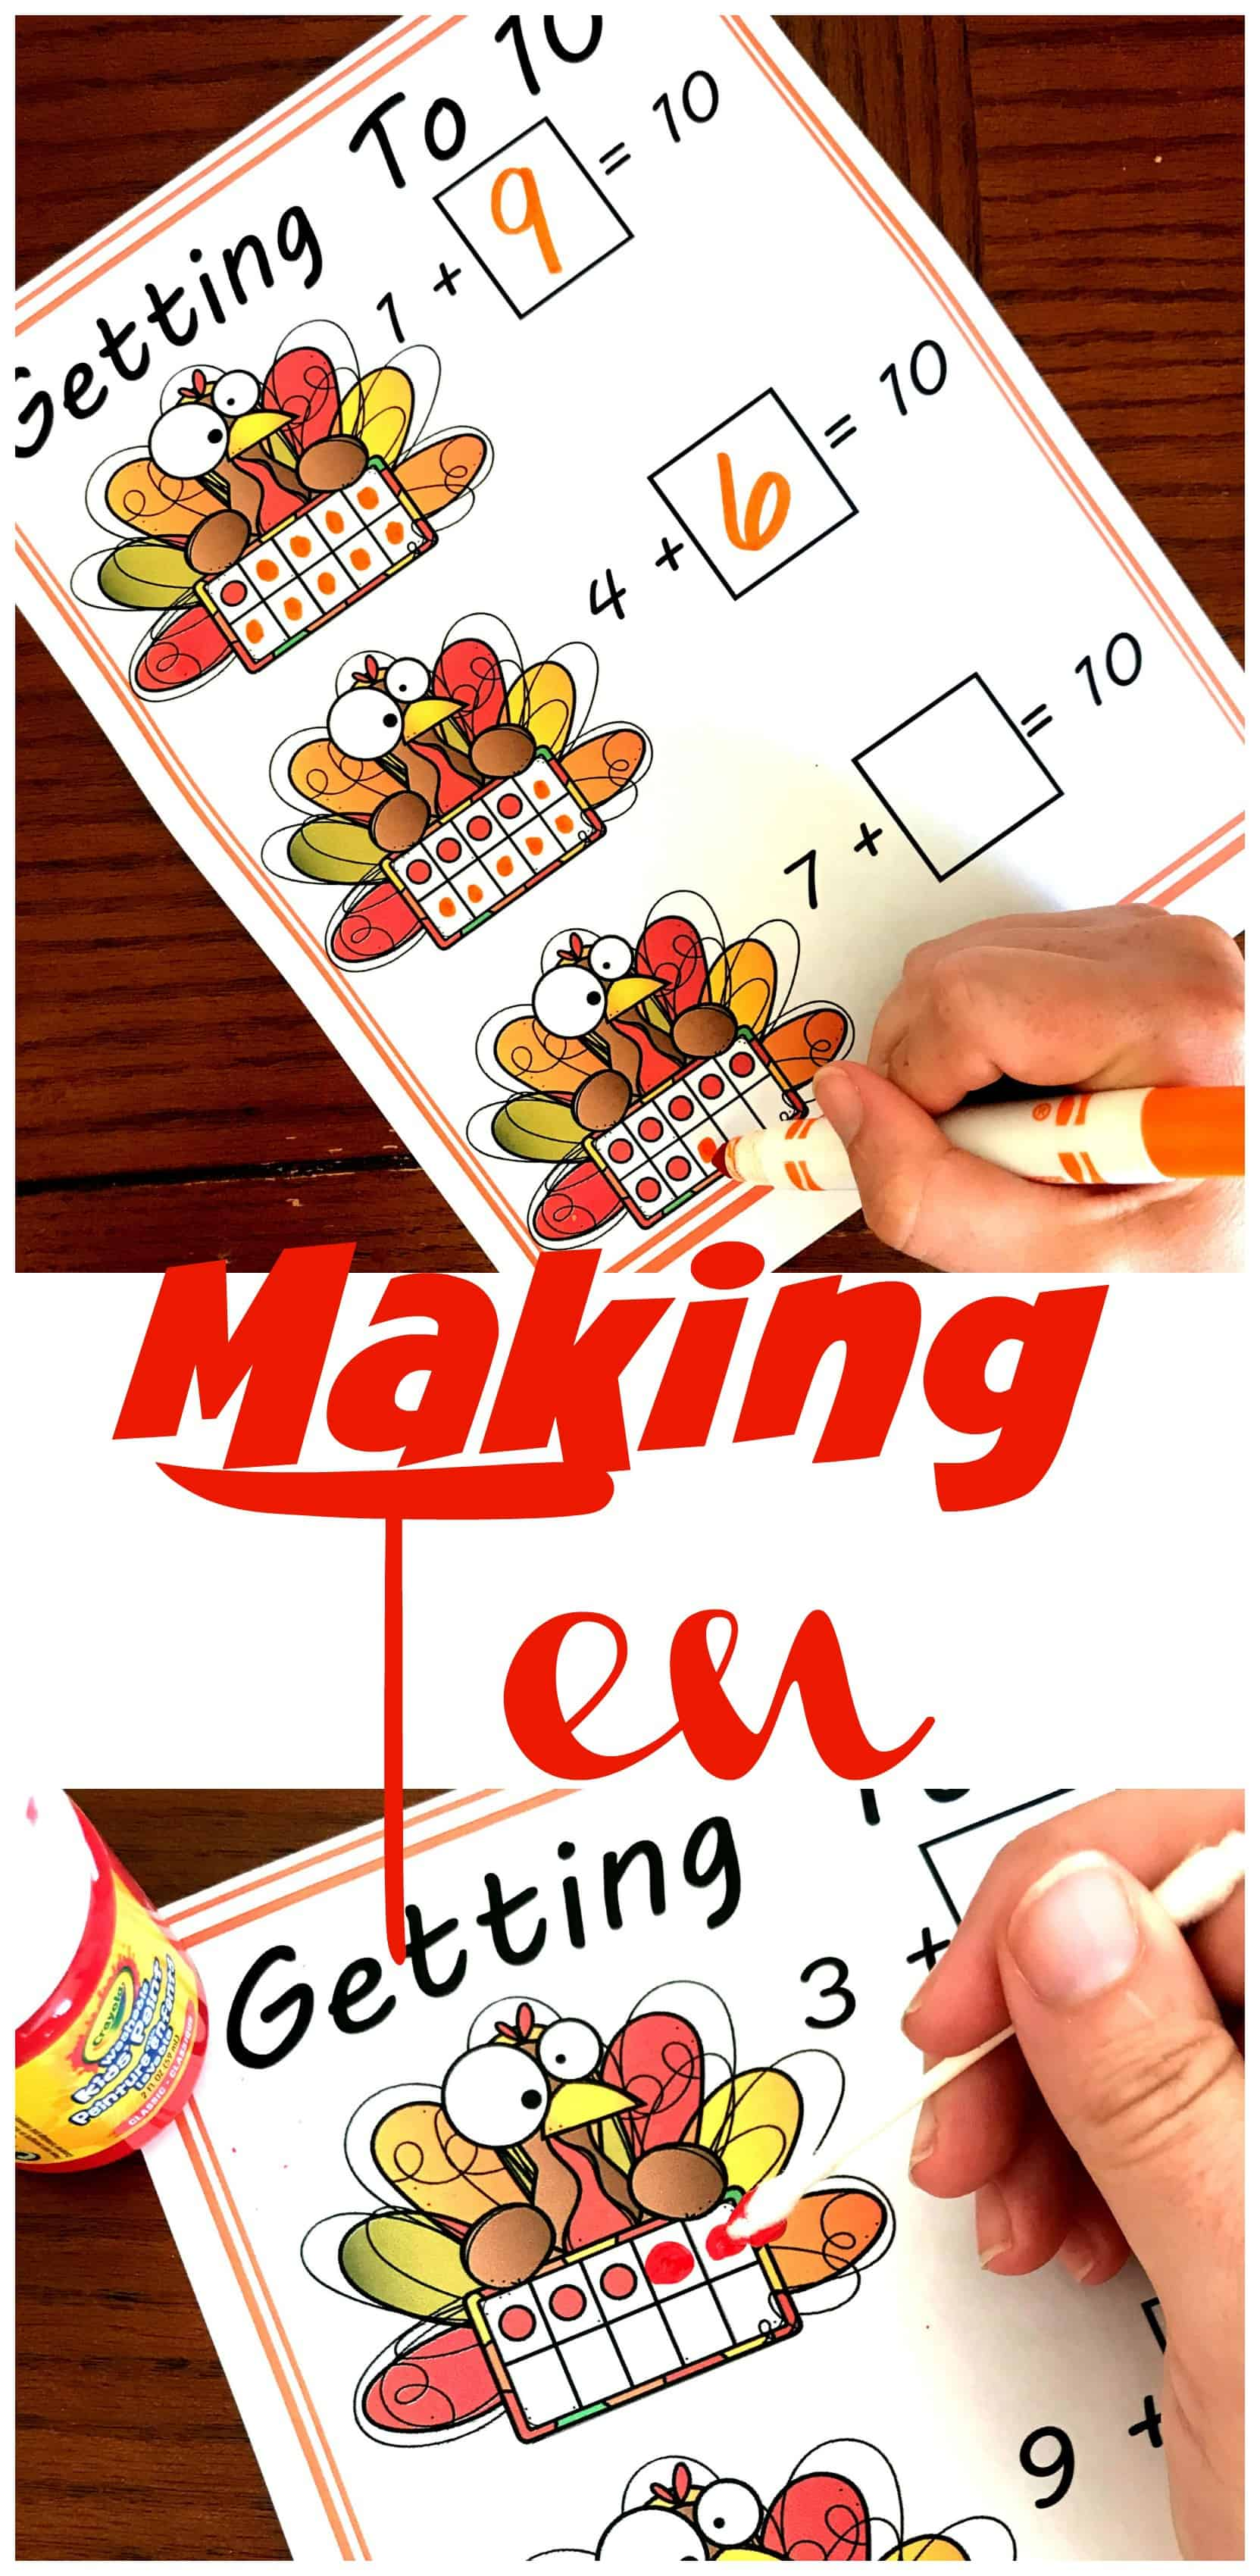 These turkey ten frames are a great way to make 10. Fill in the ten frames and then solve the equations to find all the combinations of 10.